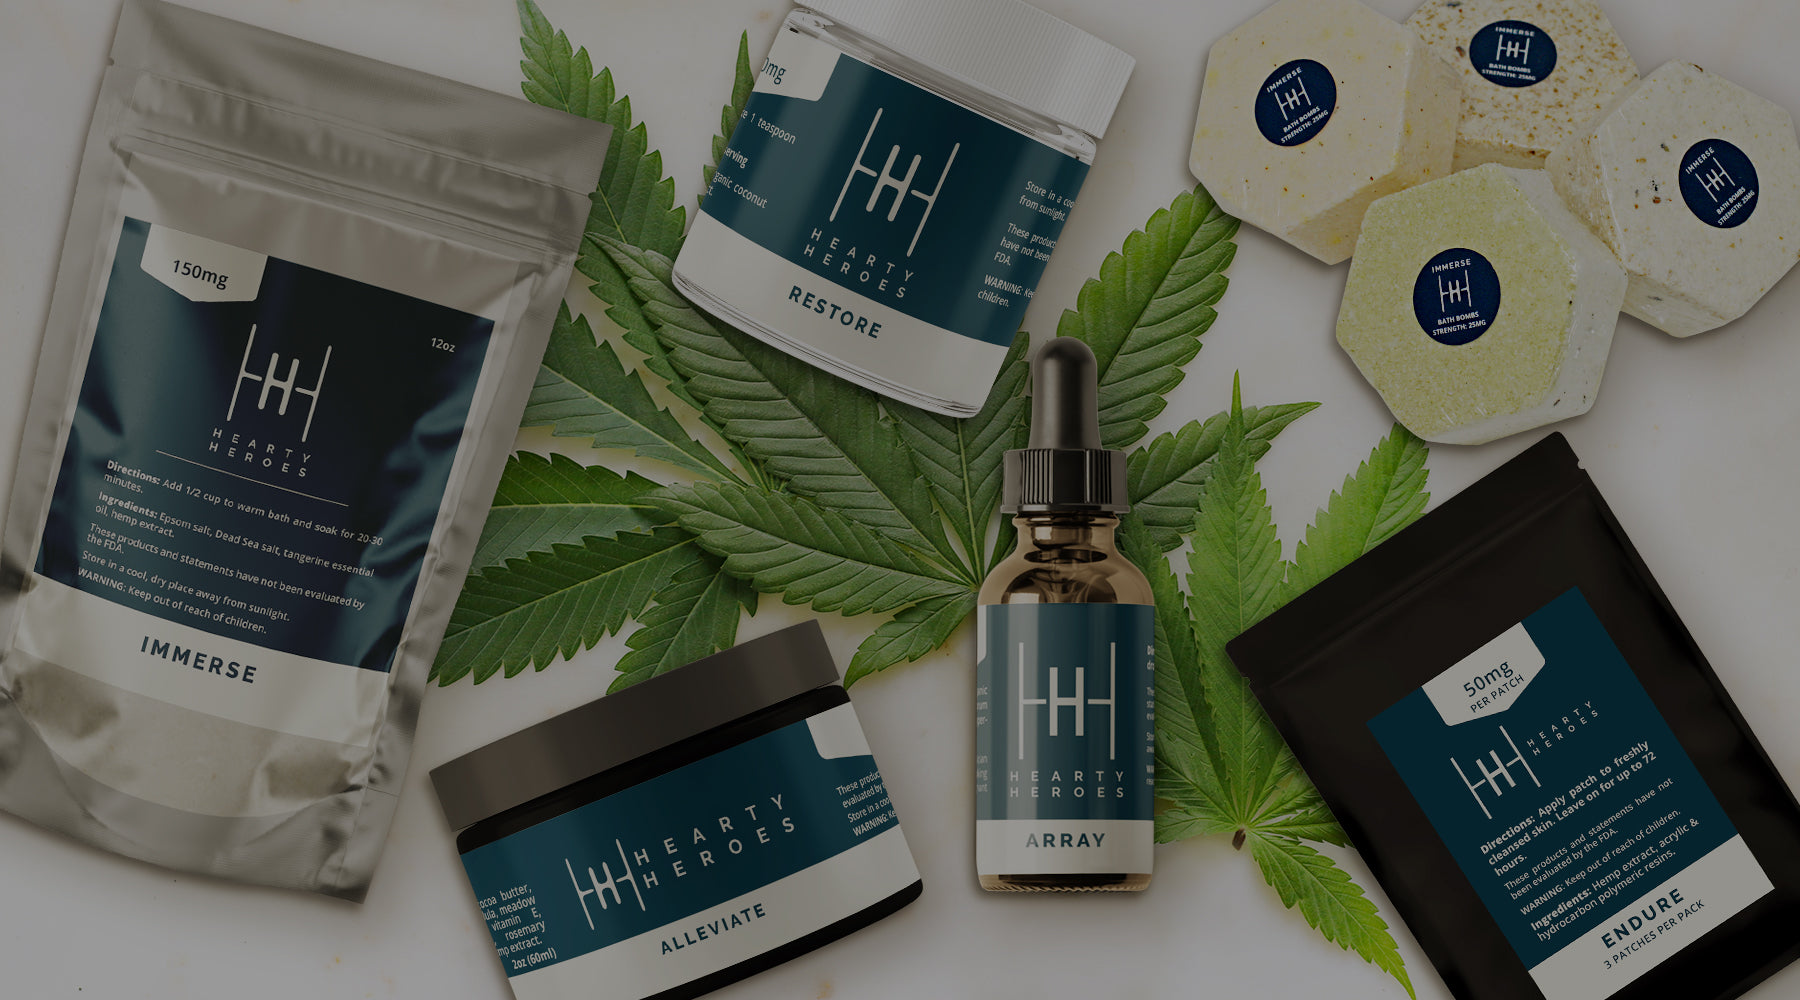 Cbd products including cbd oil for pain and anxiety